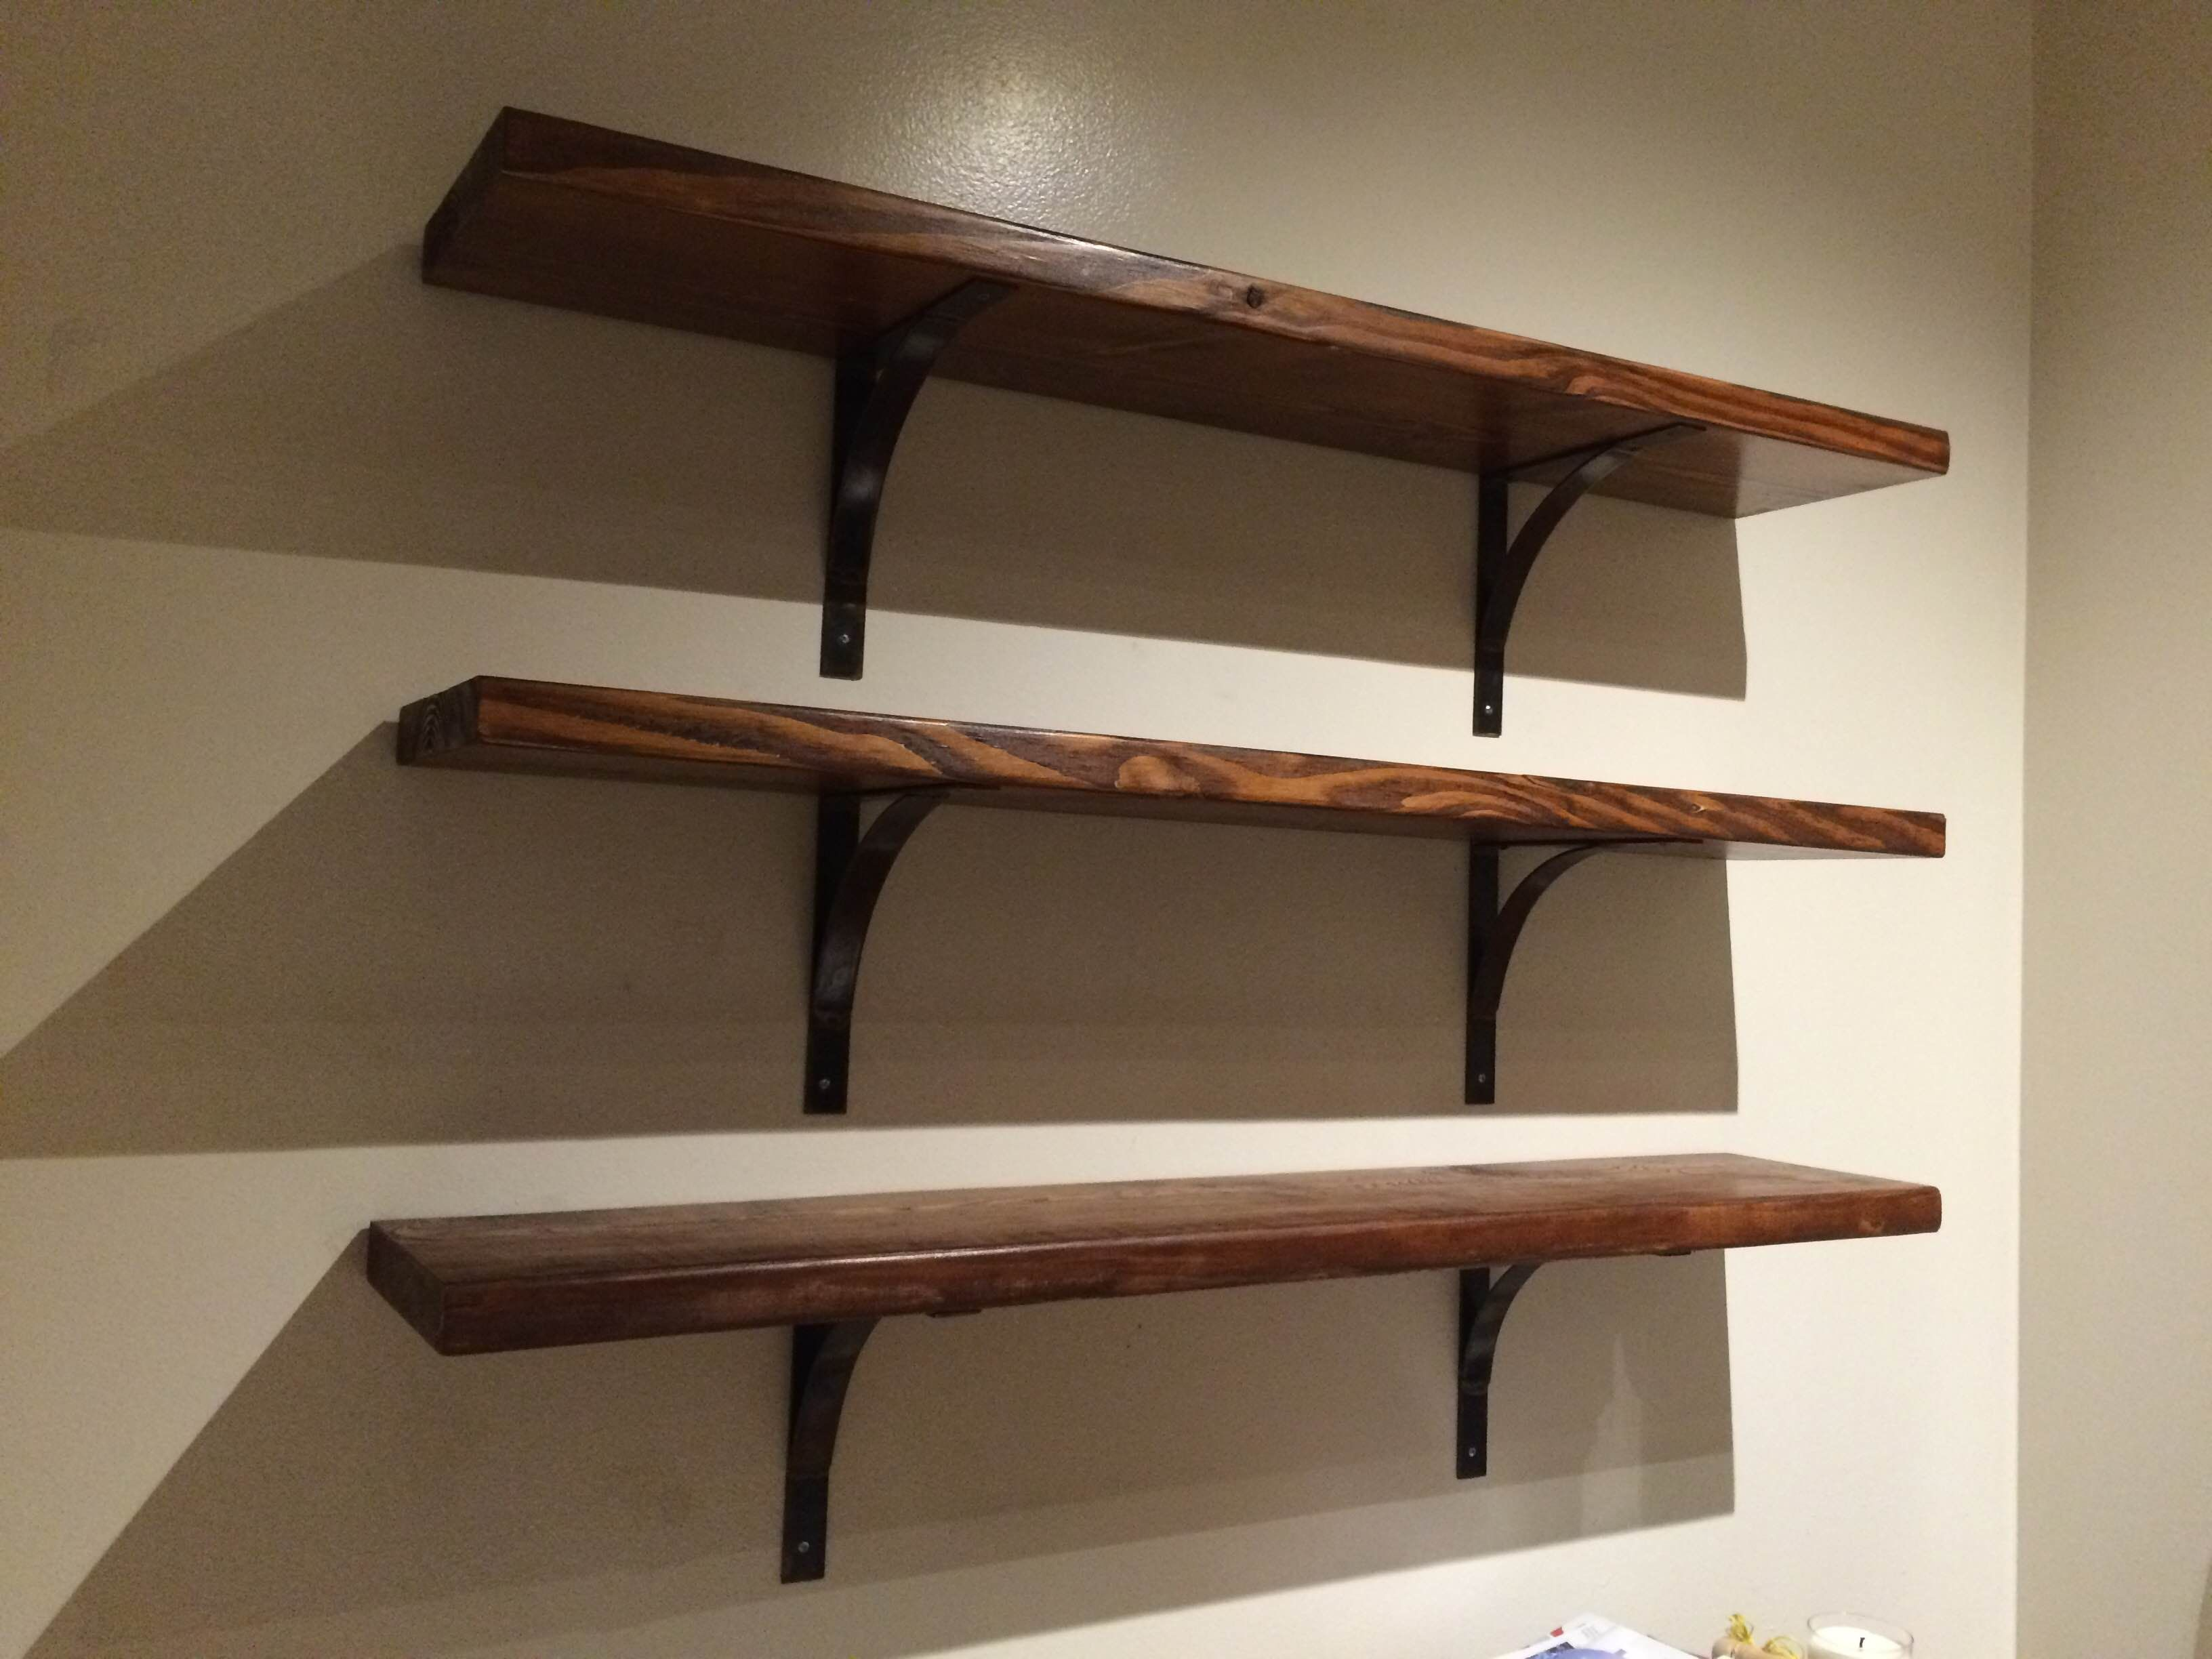 Fun Diy Home Decor Ideas Hand Crafted Handmade Industrial Steel Shelf Bracket By